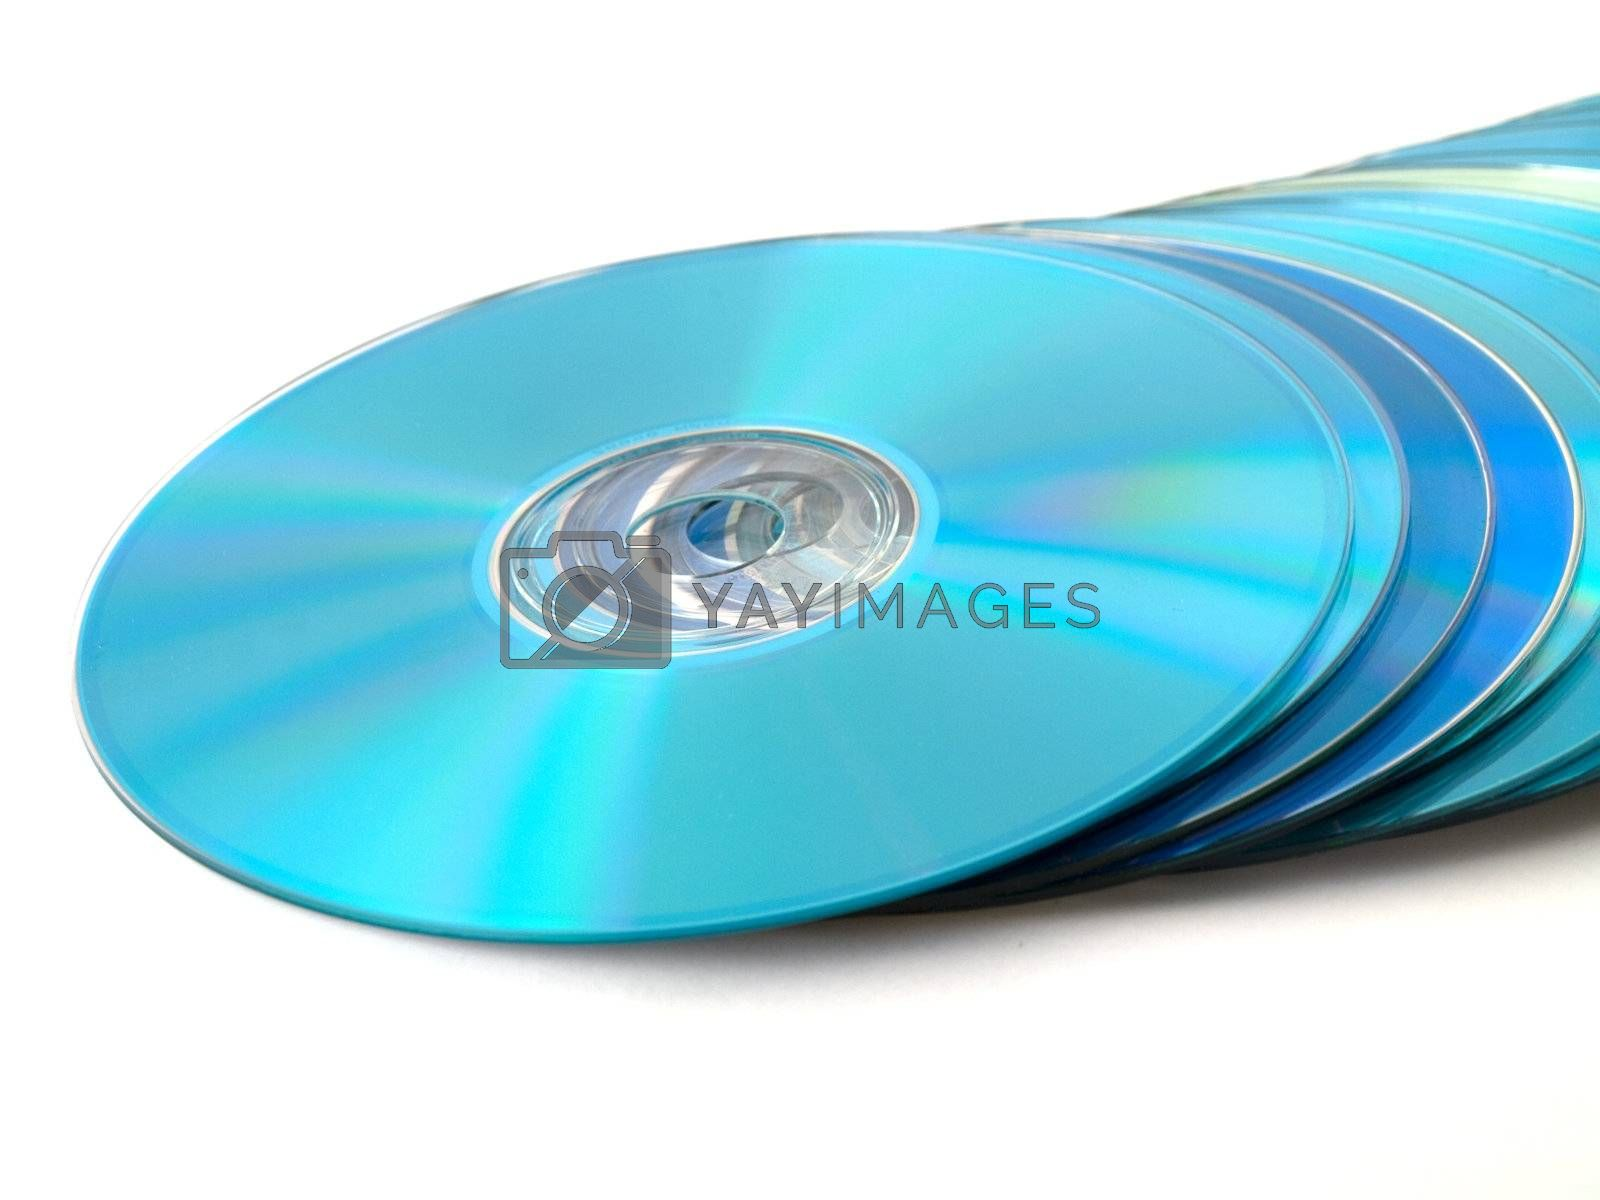 CDs DVDs on White Background